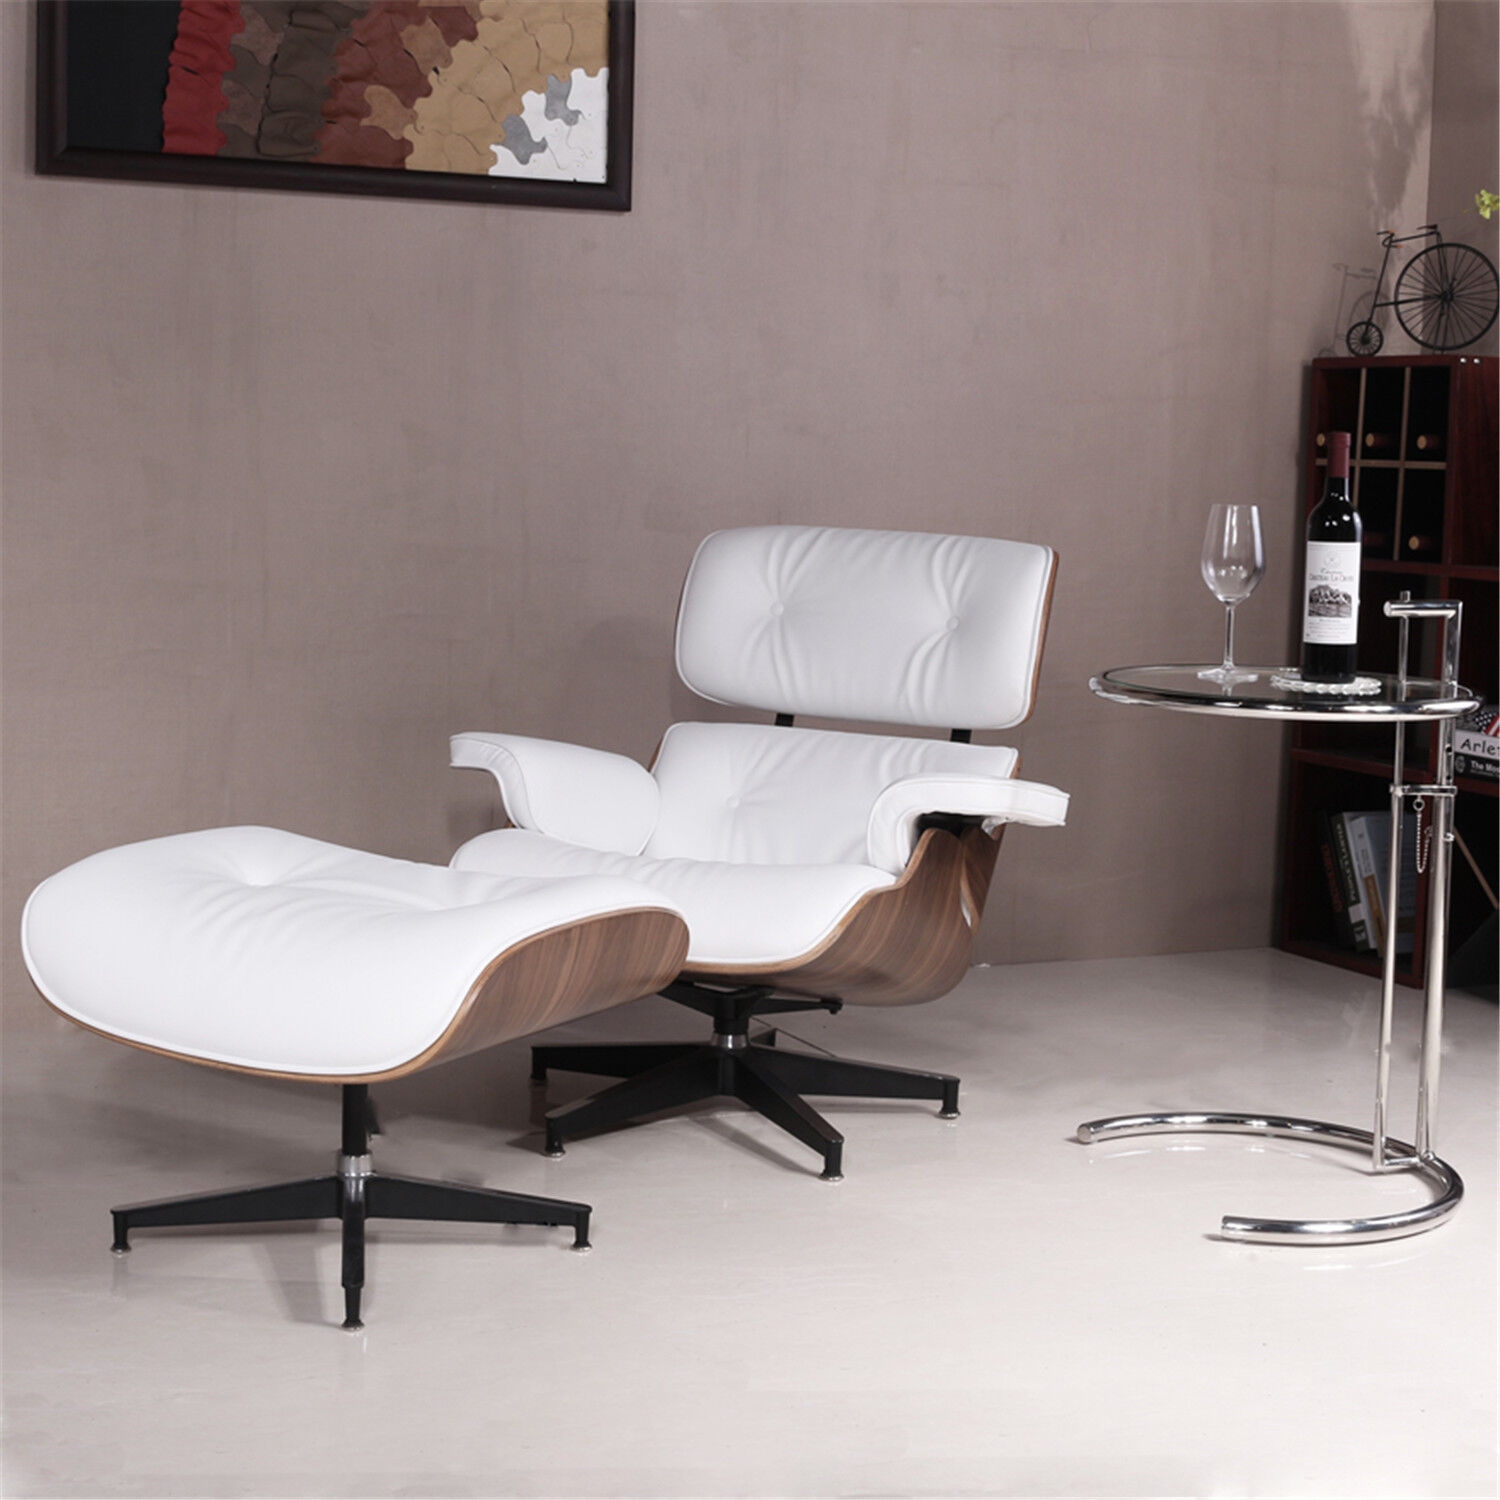 Miraculous Details About Mid Century 100 Grain Italian Leather Recliner Lounge Chair Ottoman White Us Evergreenethics Interior Chair Design Evergreenethicsorg